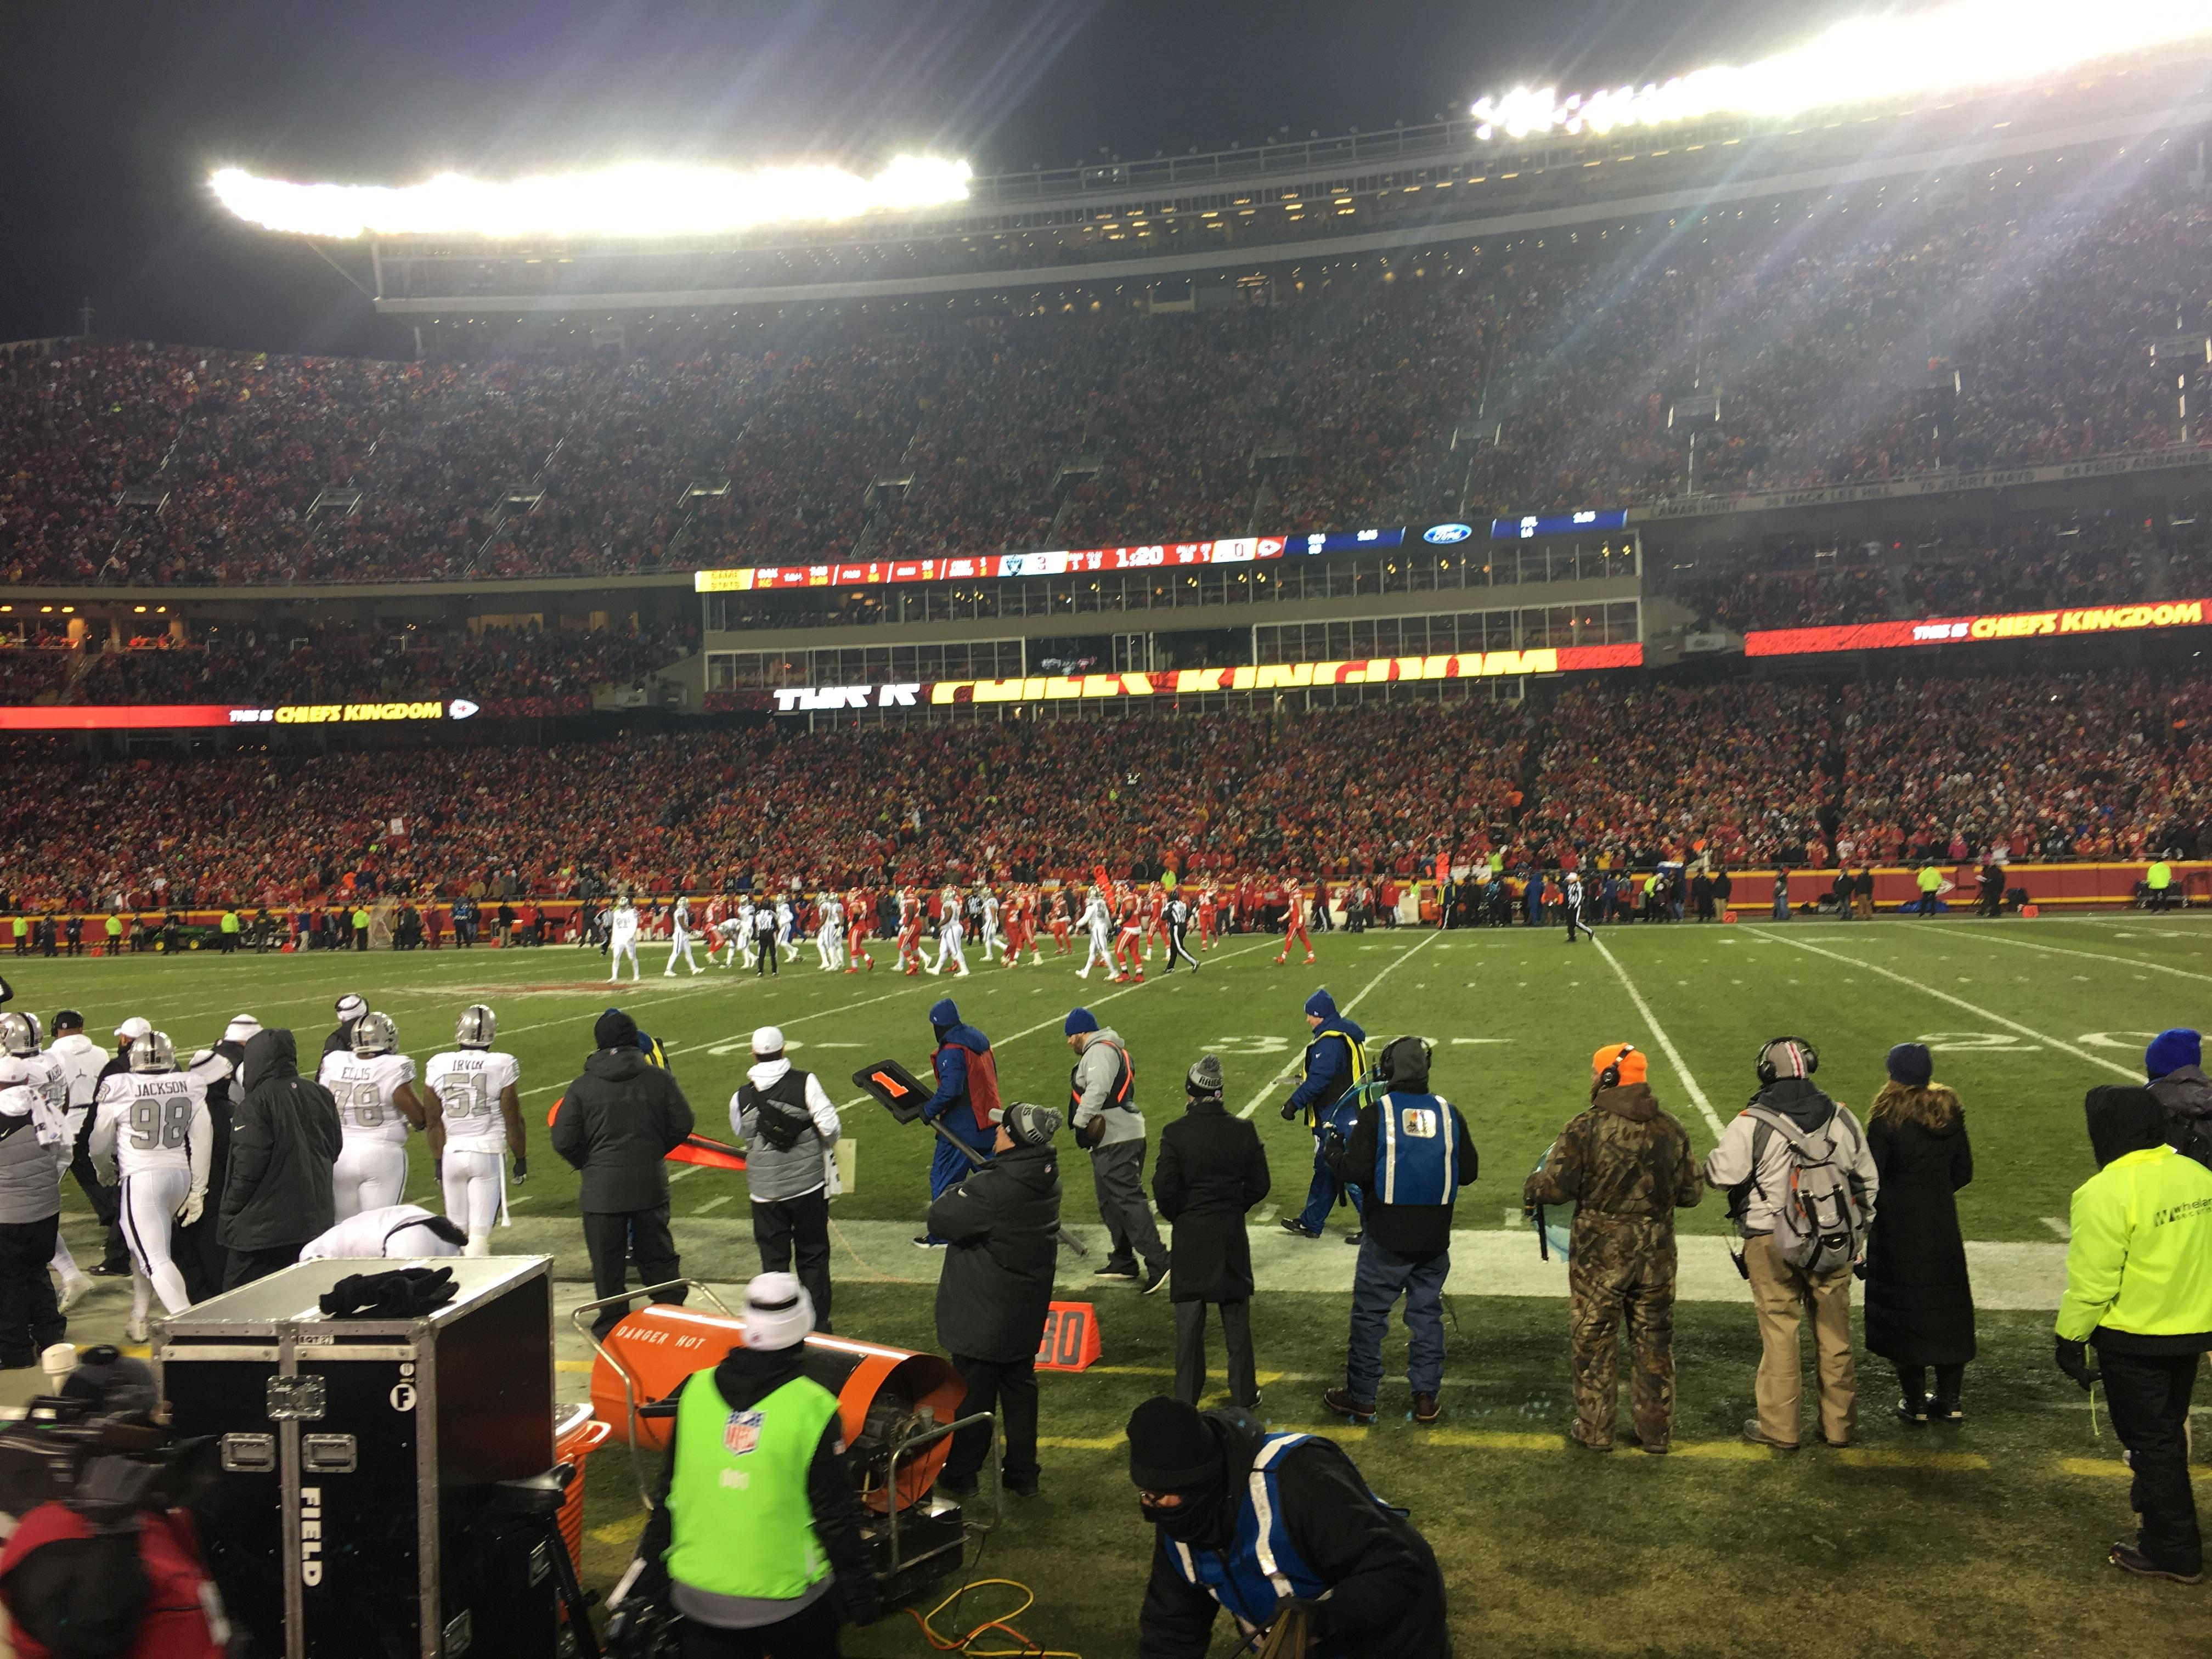 Arrowhead Stadium Section 135 Row 2 Seat 22